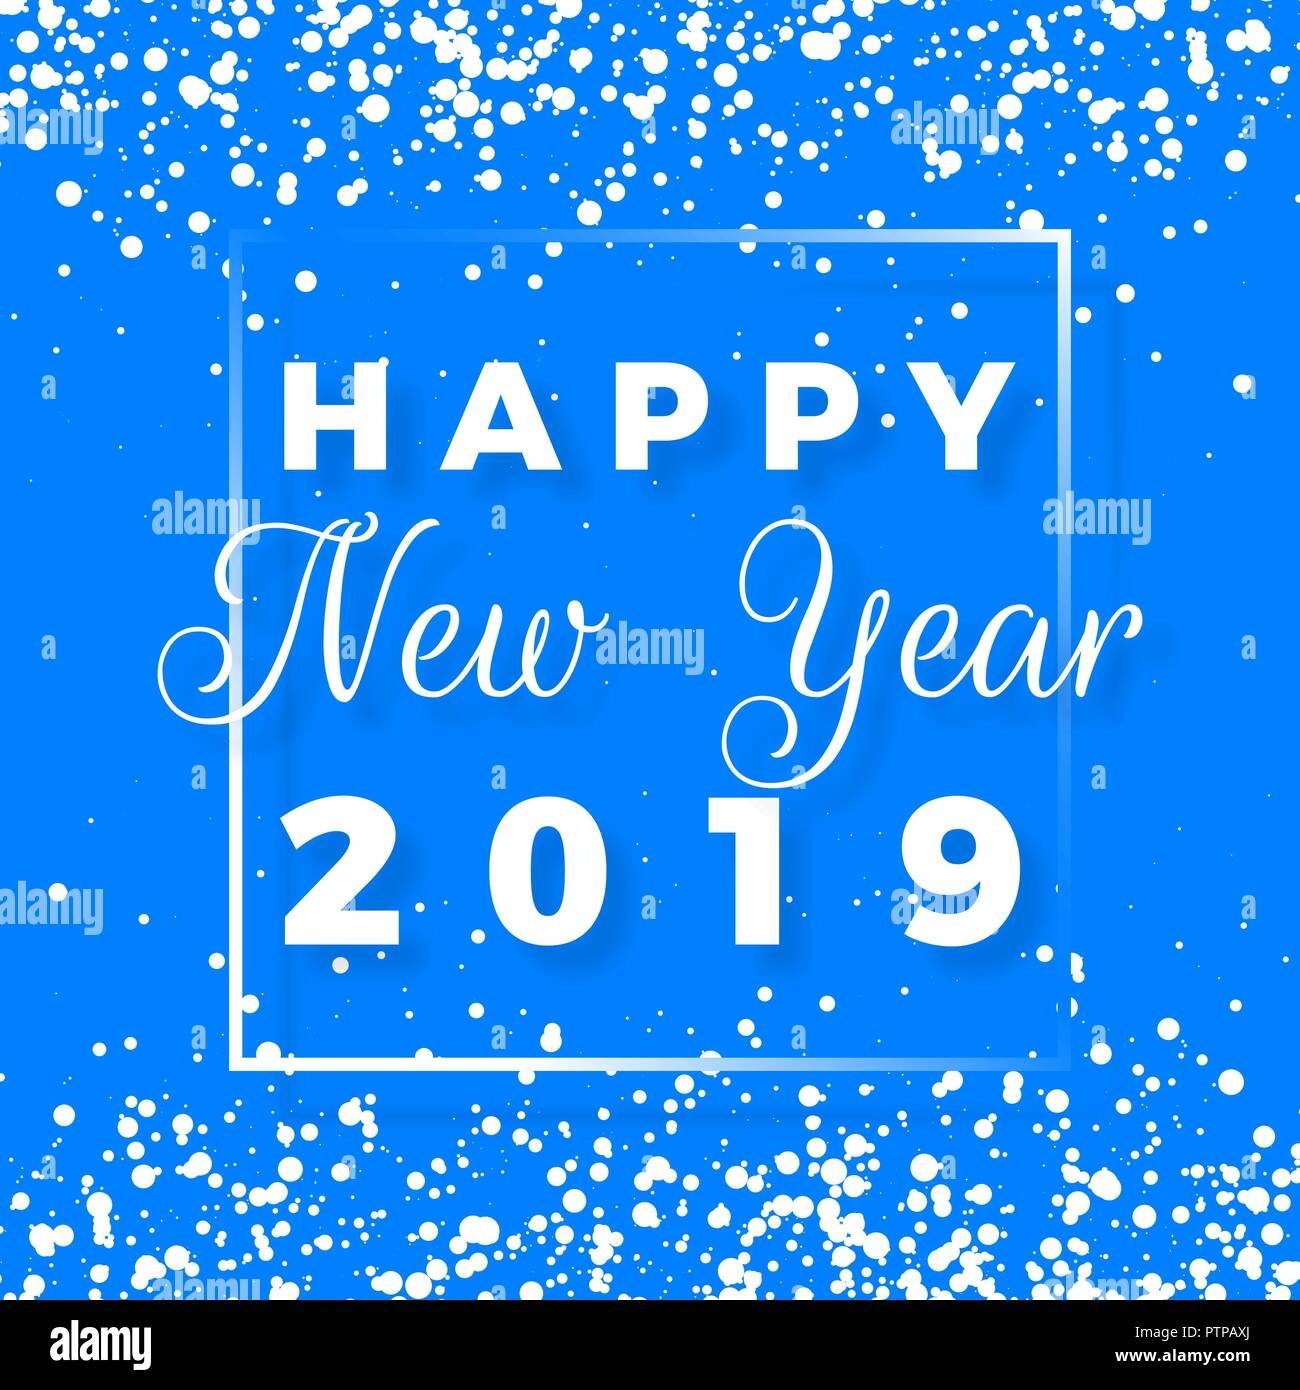 Happy new year postcard happy new year 2019 text design greeting happy new year postcard happy new year 2019 text design greeting card with white text in frame and snowflakes on blue background vector illustratio m4hsunfo